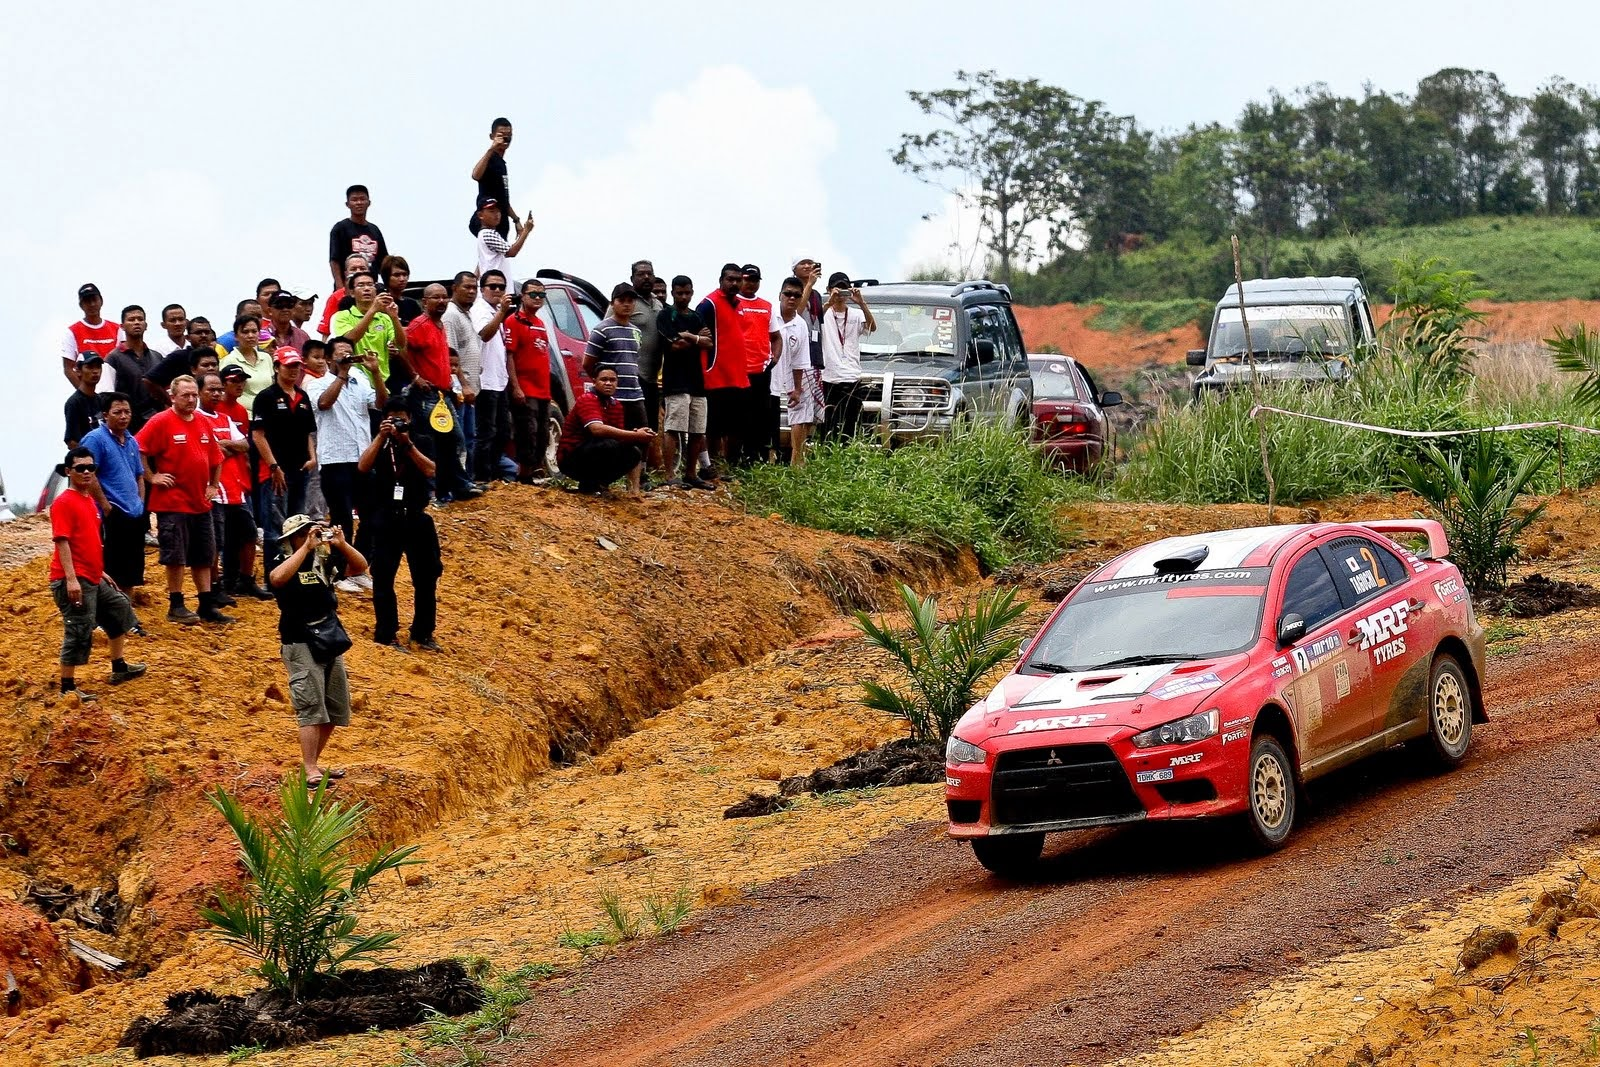 Ranked on the asia pacific circuit the malaysia rally fia pacific rally championshp draws some of the world s foremost rally driving experts from australia